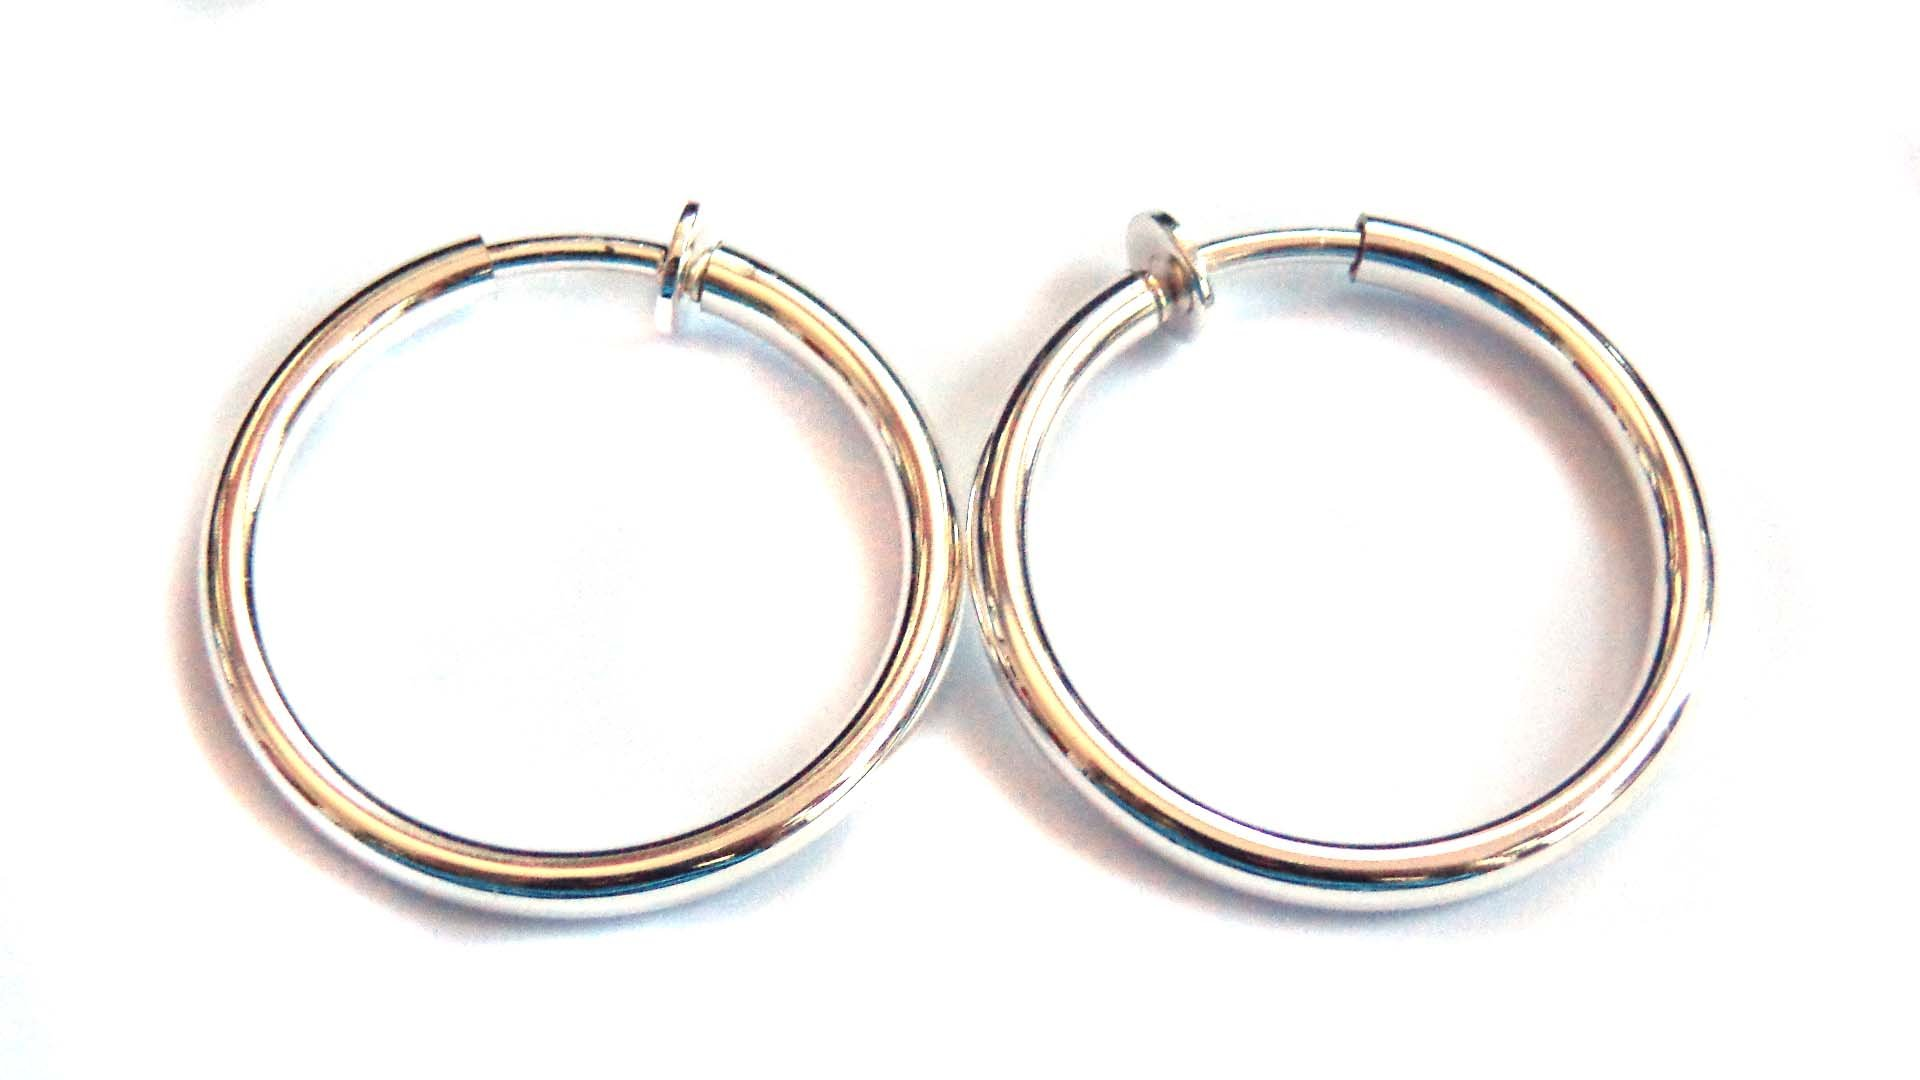 Clip-on Earrings Round Shiny Hoop Gold Or Silver Tone 1 inch Hoops Hypo-Allergenic (silver)